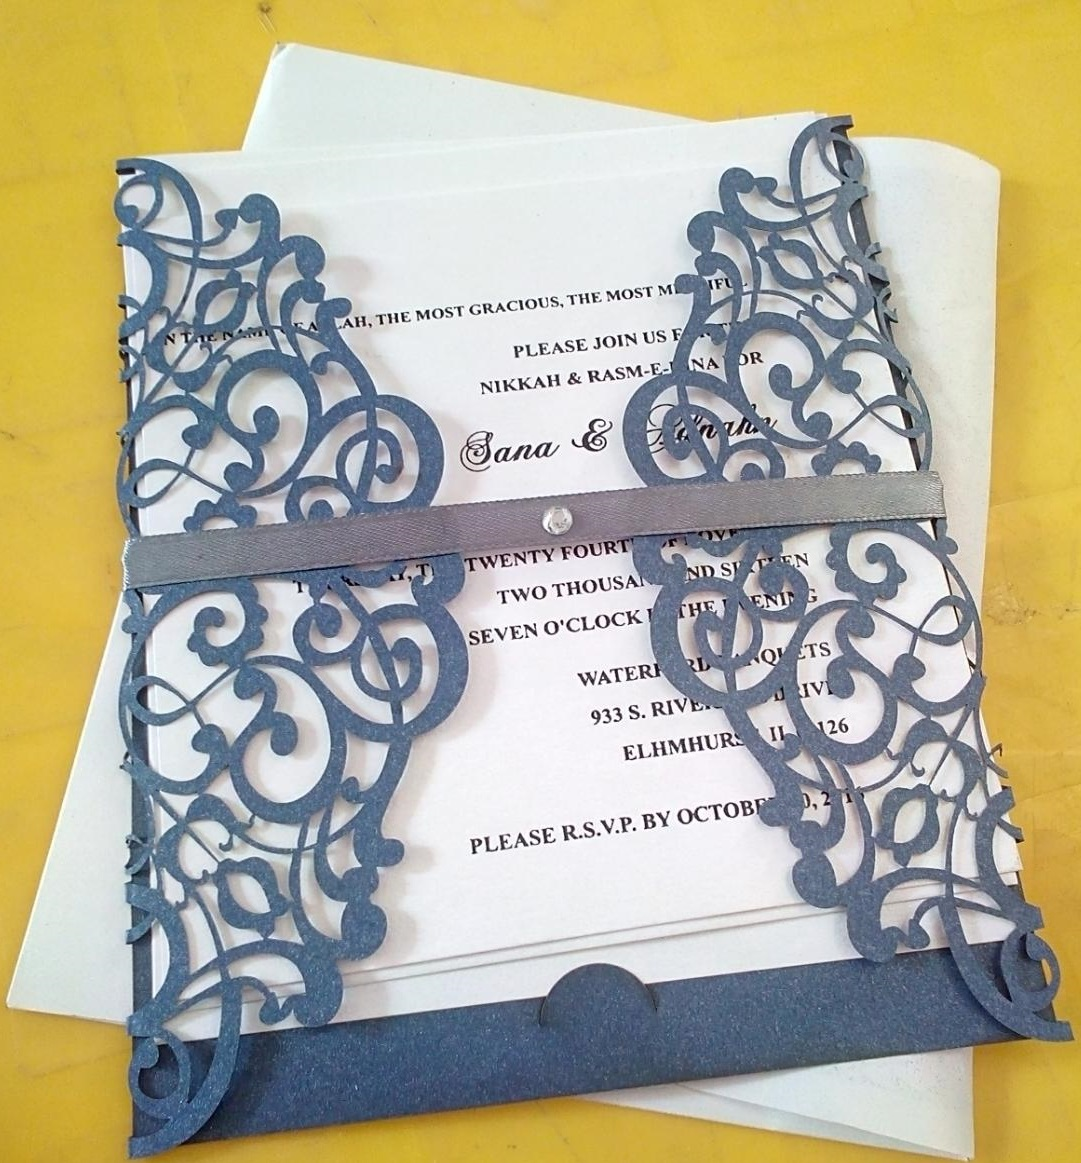 Blue and white invitation card for wedding